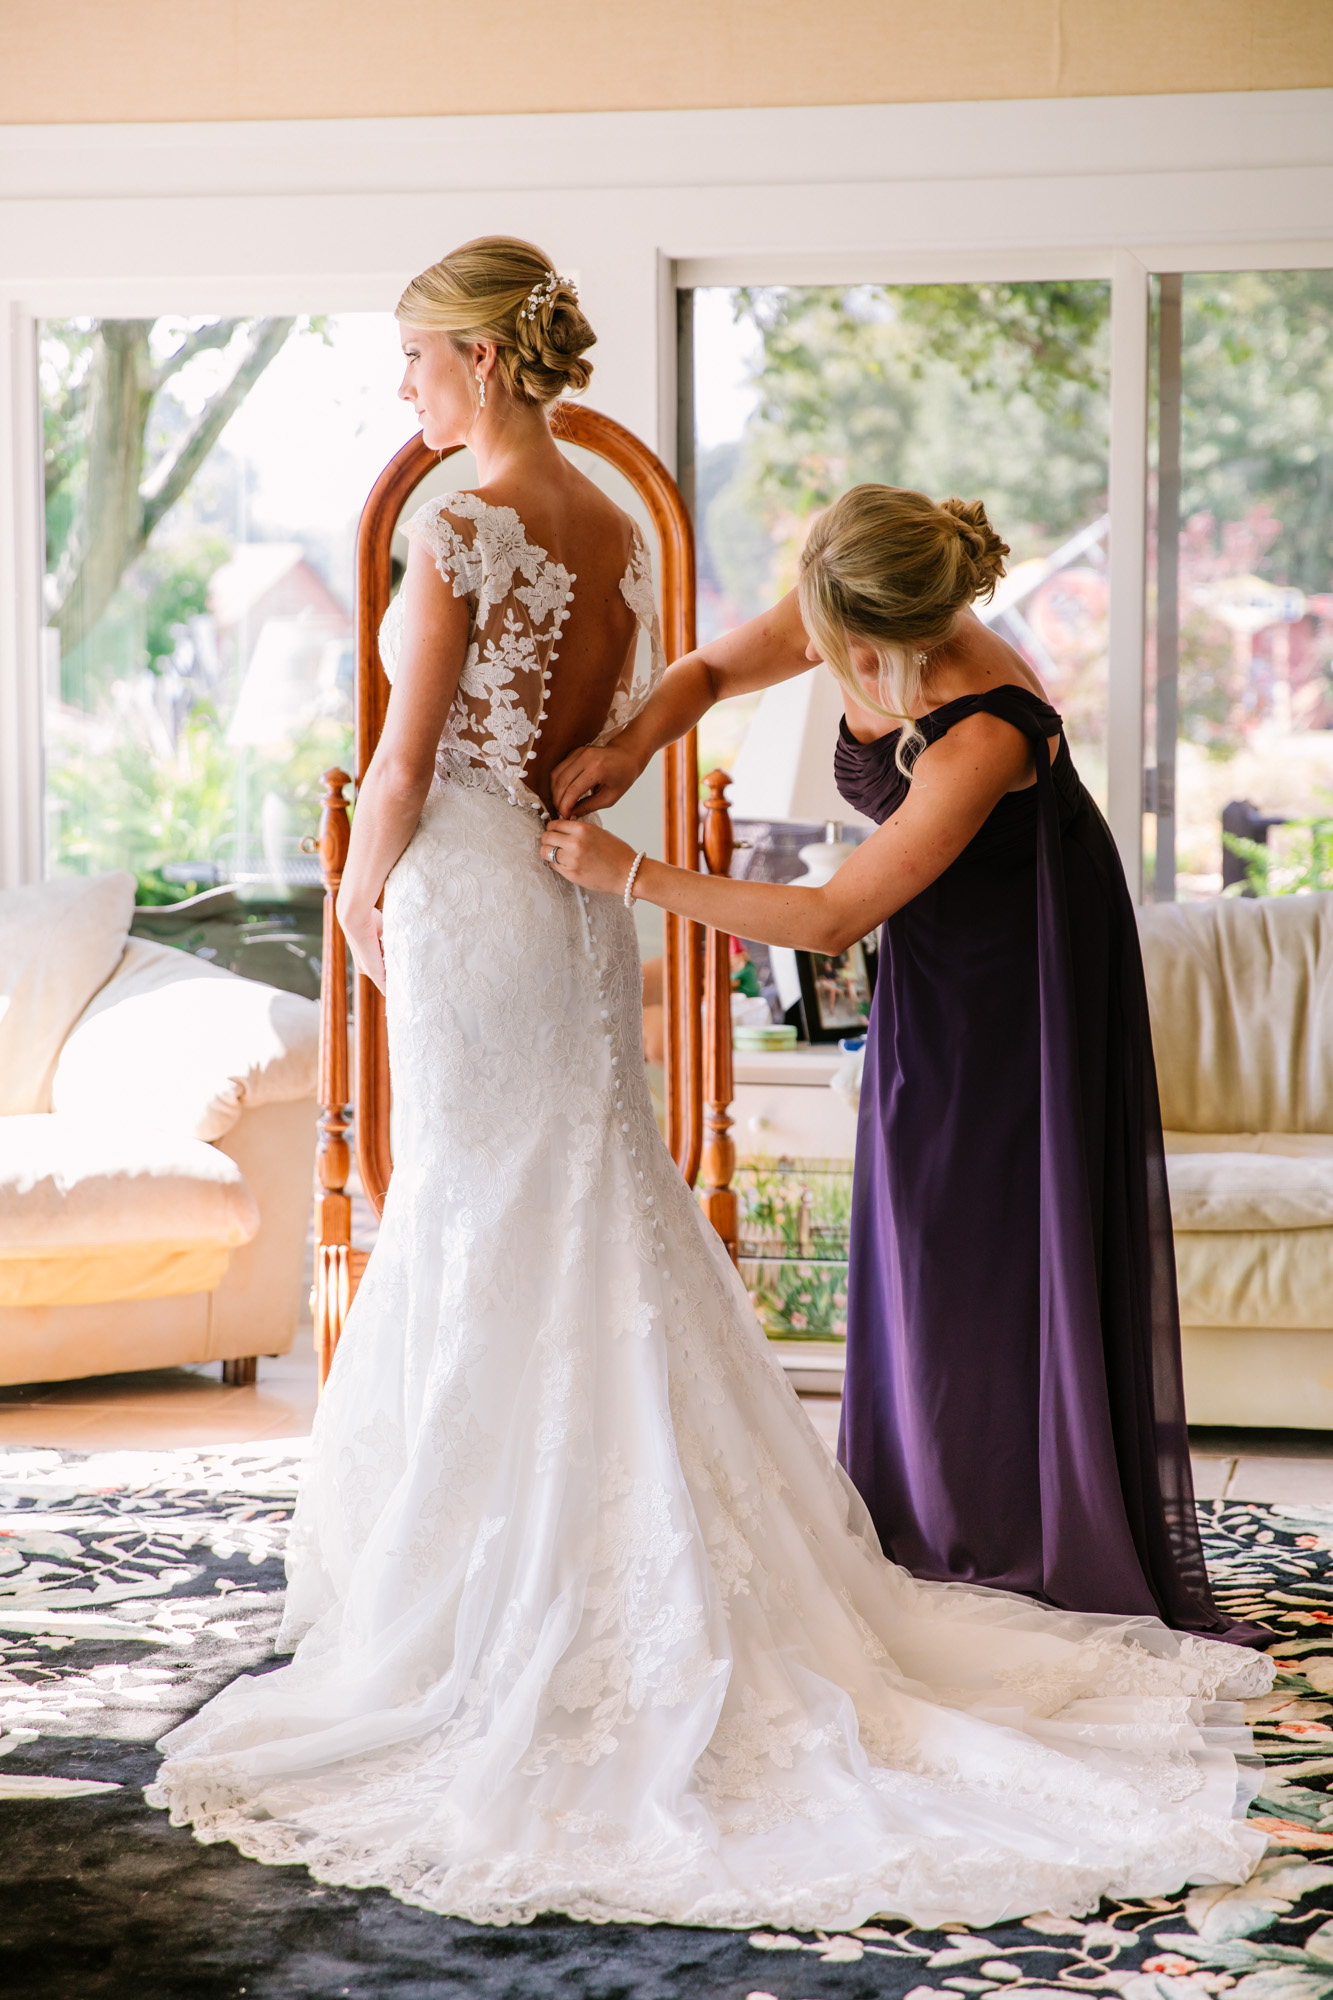 Waynesville, NC Wedding Photography | Mother getting Bride Dressed